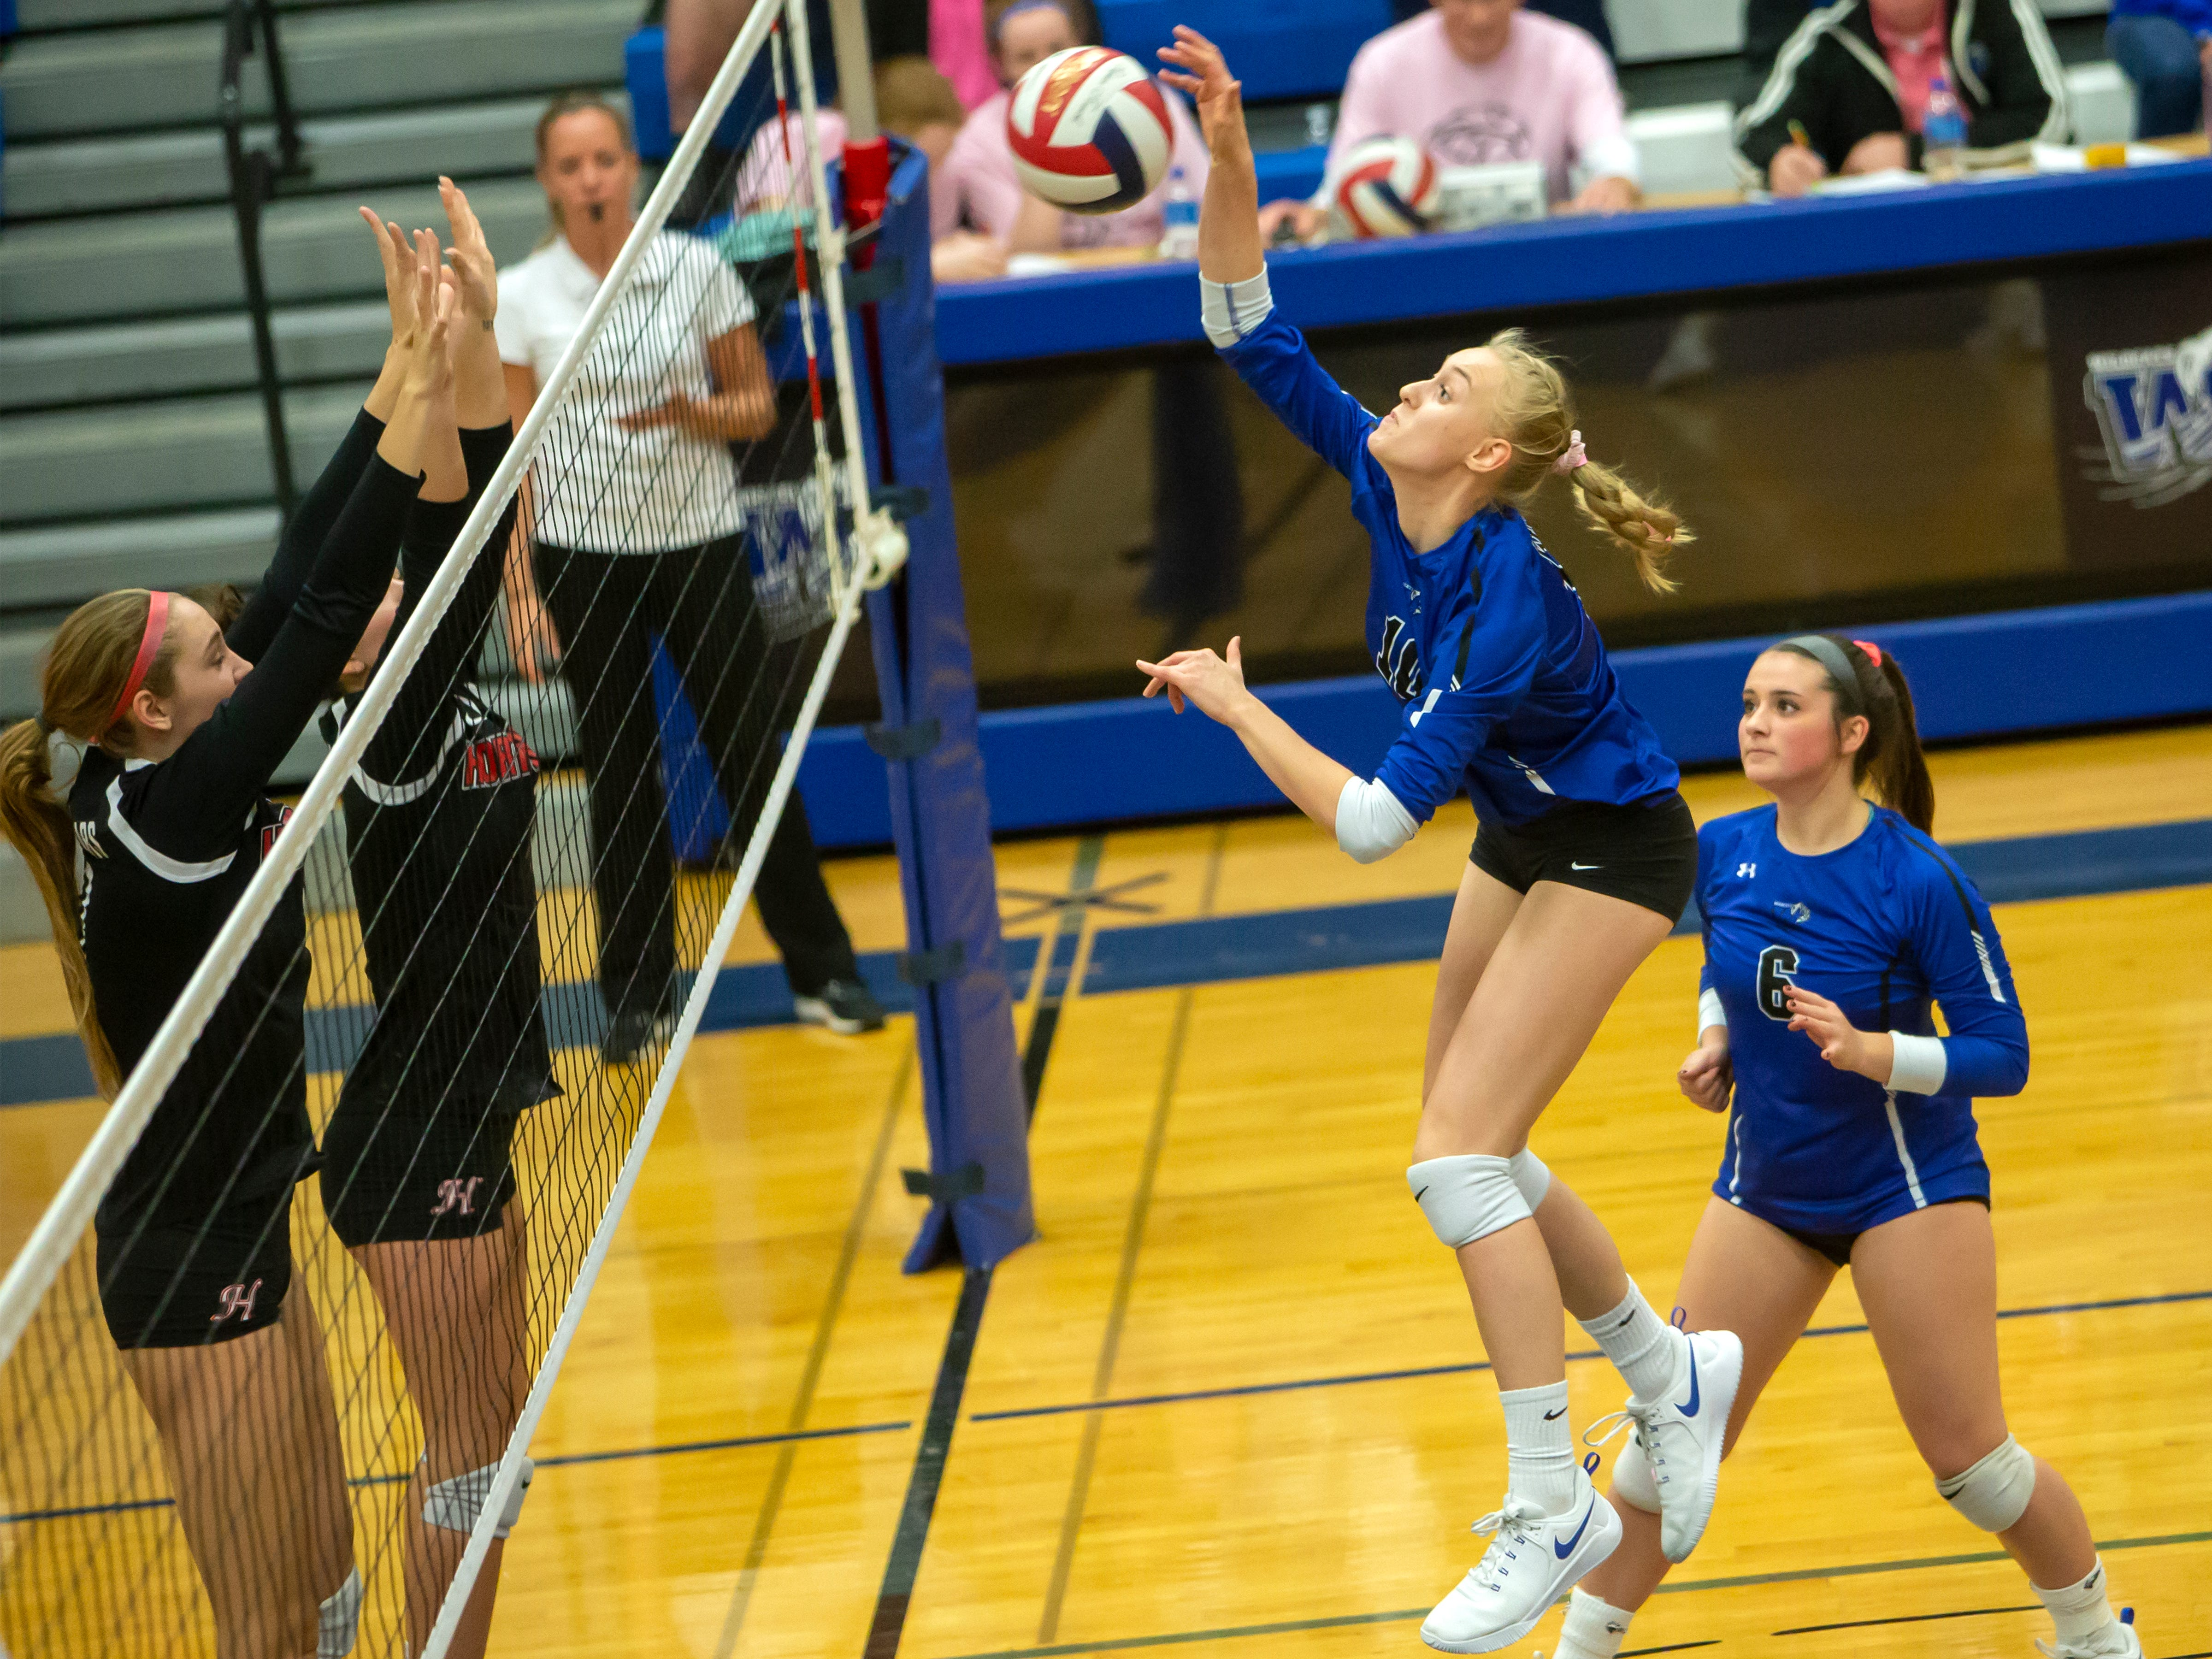 Oshkosh West's natalie Johanknecht takes a shot over to Hortonville playing at Oshkosh West High School on Thursday, October 11, 2018.